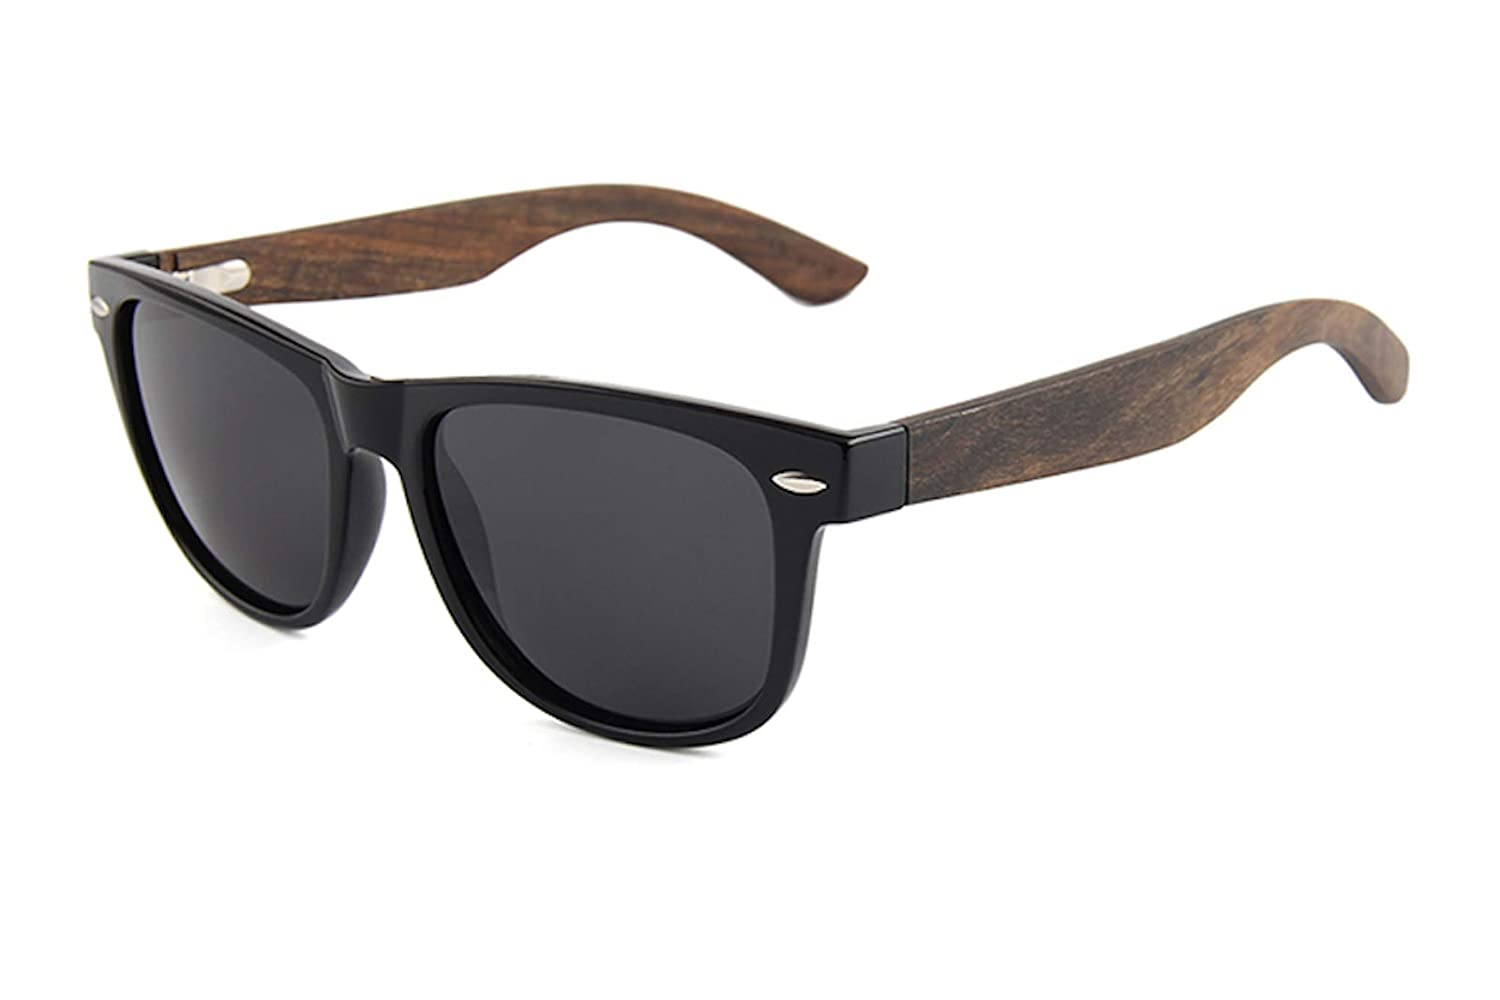 cfc74cdfed Amazon.com  Trek Woodwear Ebony Wood Wayfarer Sunglasses for Men or Women  with Polarized Lenses and Bonus Bamboo Case and Microfiber Pouch  Clothing